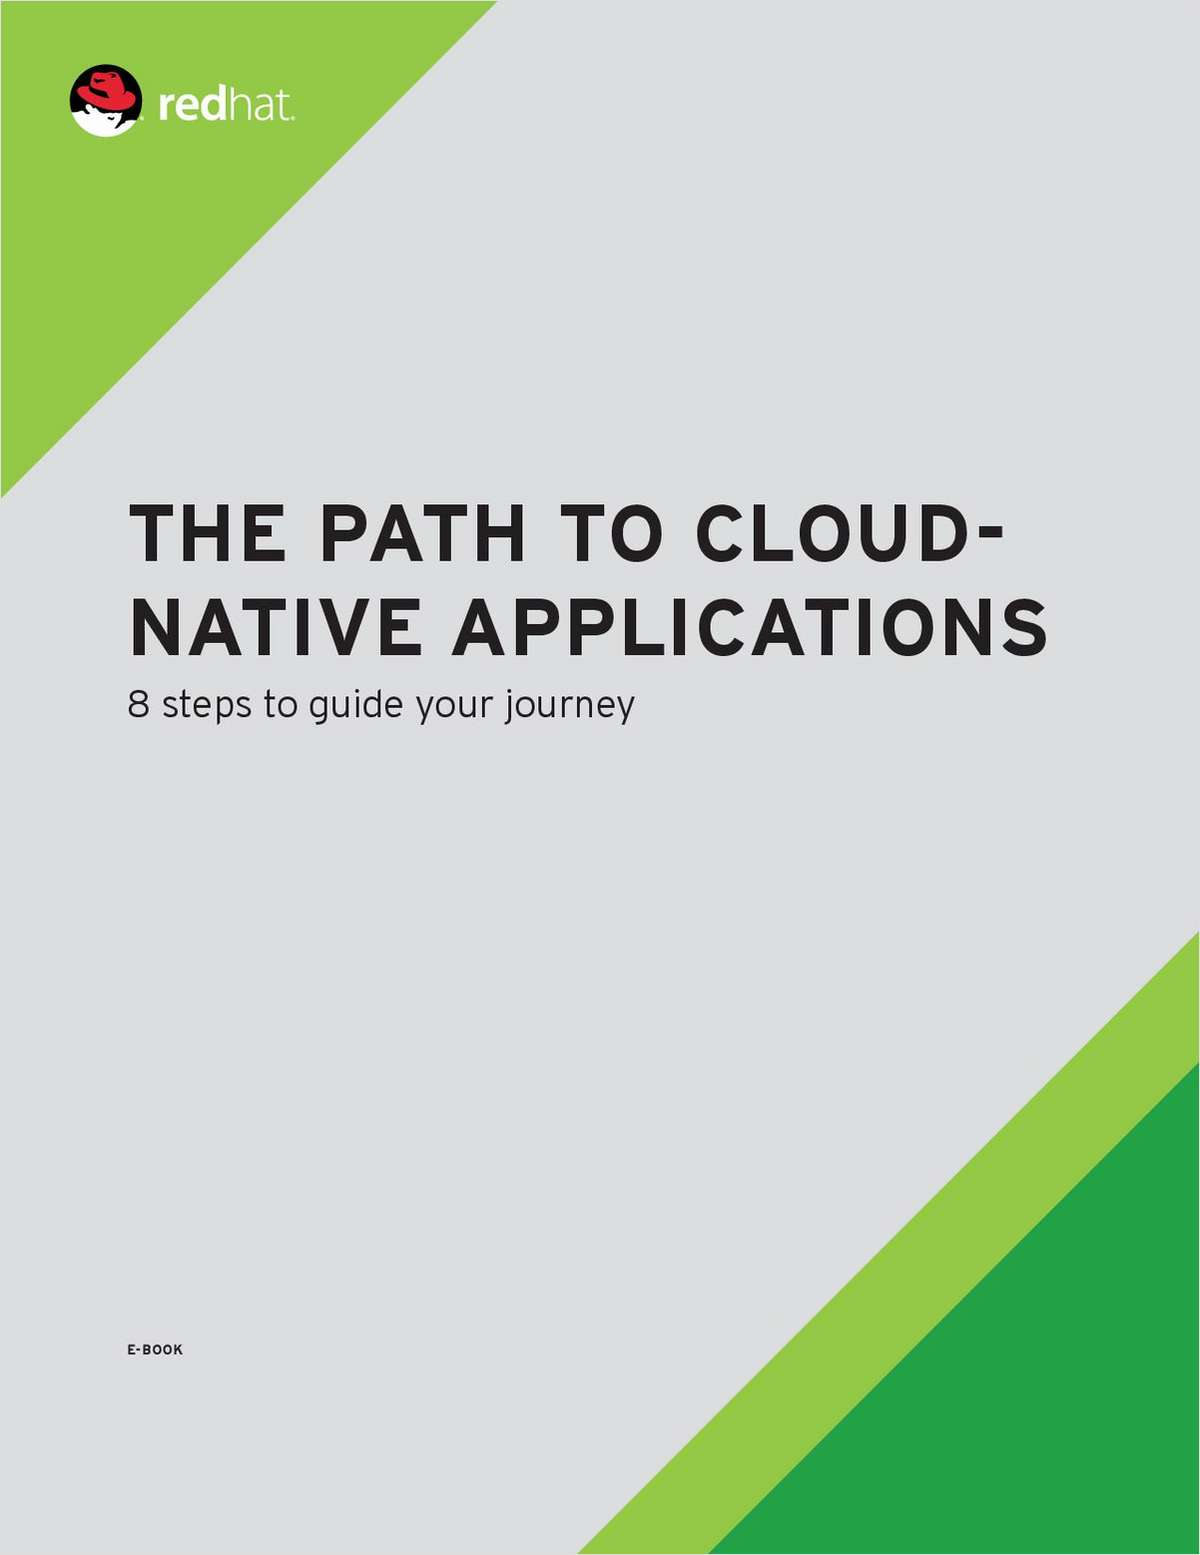 The path to cloud native applications